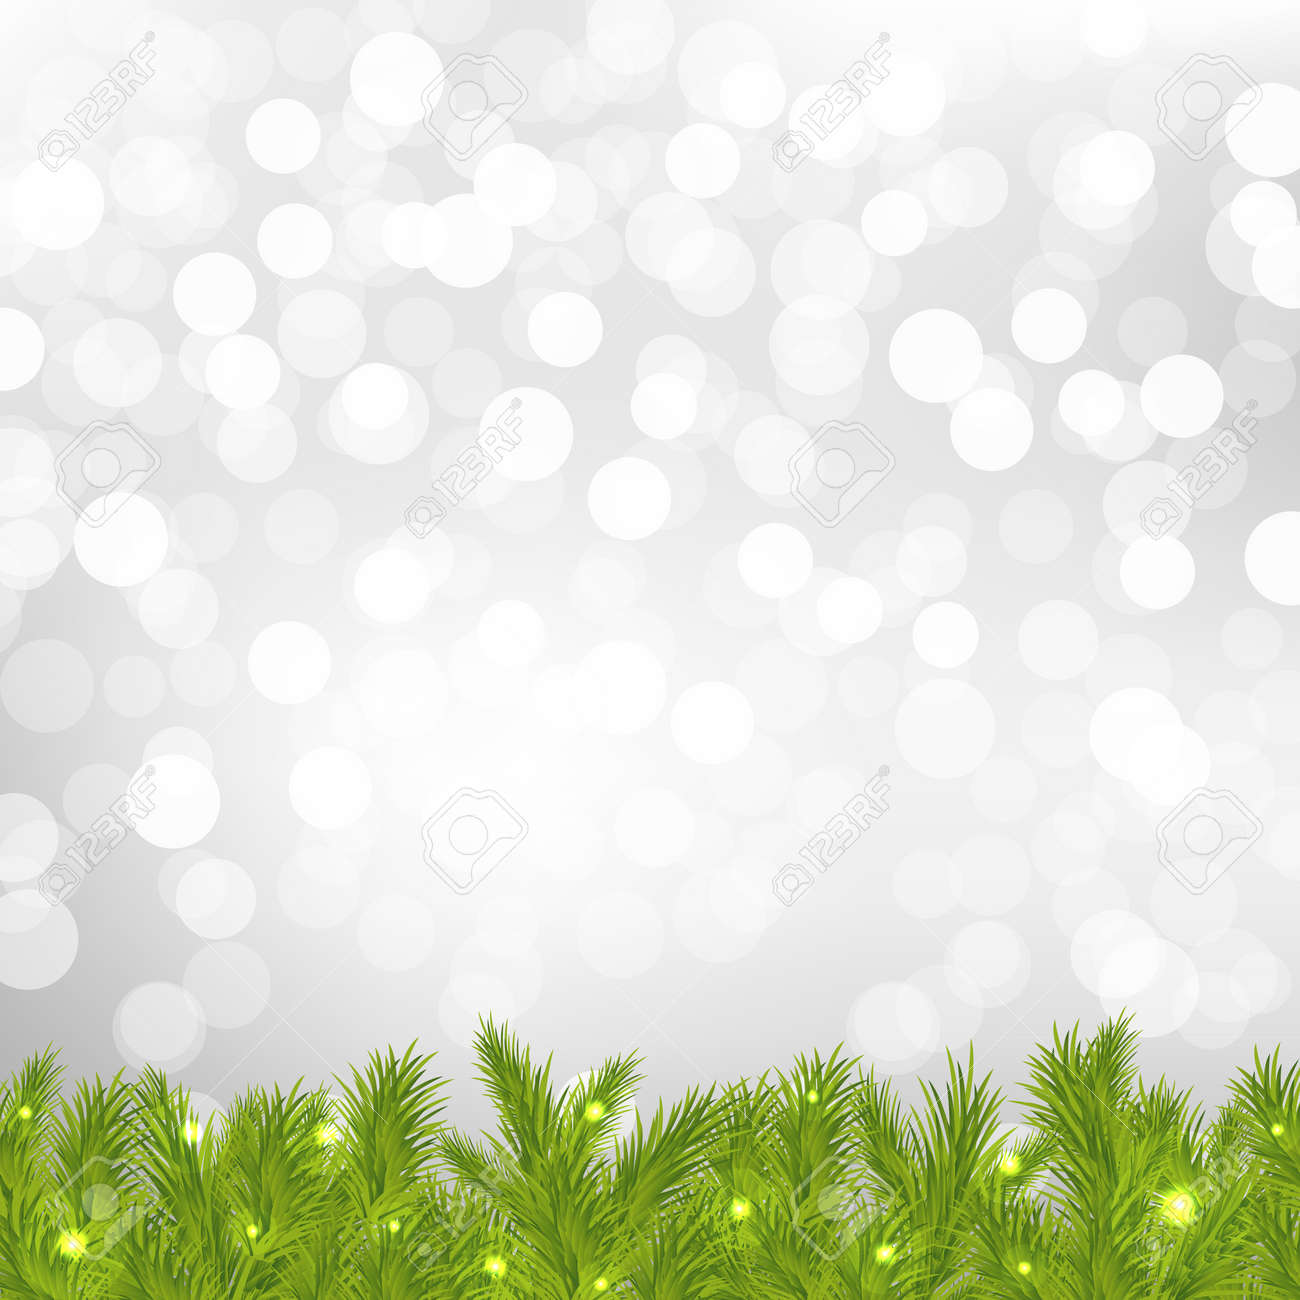 FirTree With Silver Bokeh With Gradient Mesh, Vector Illustration Stock Vector - 17315078